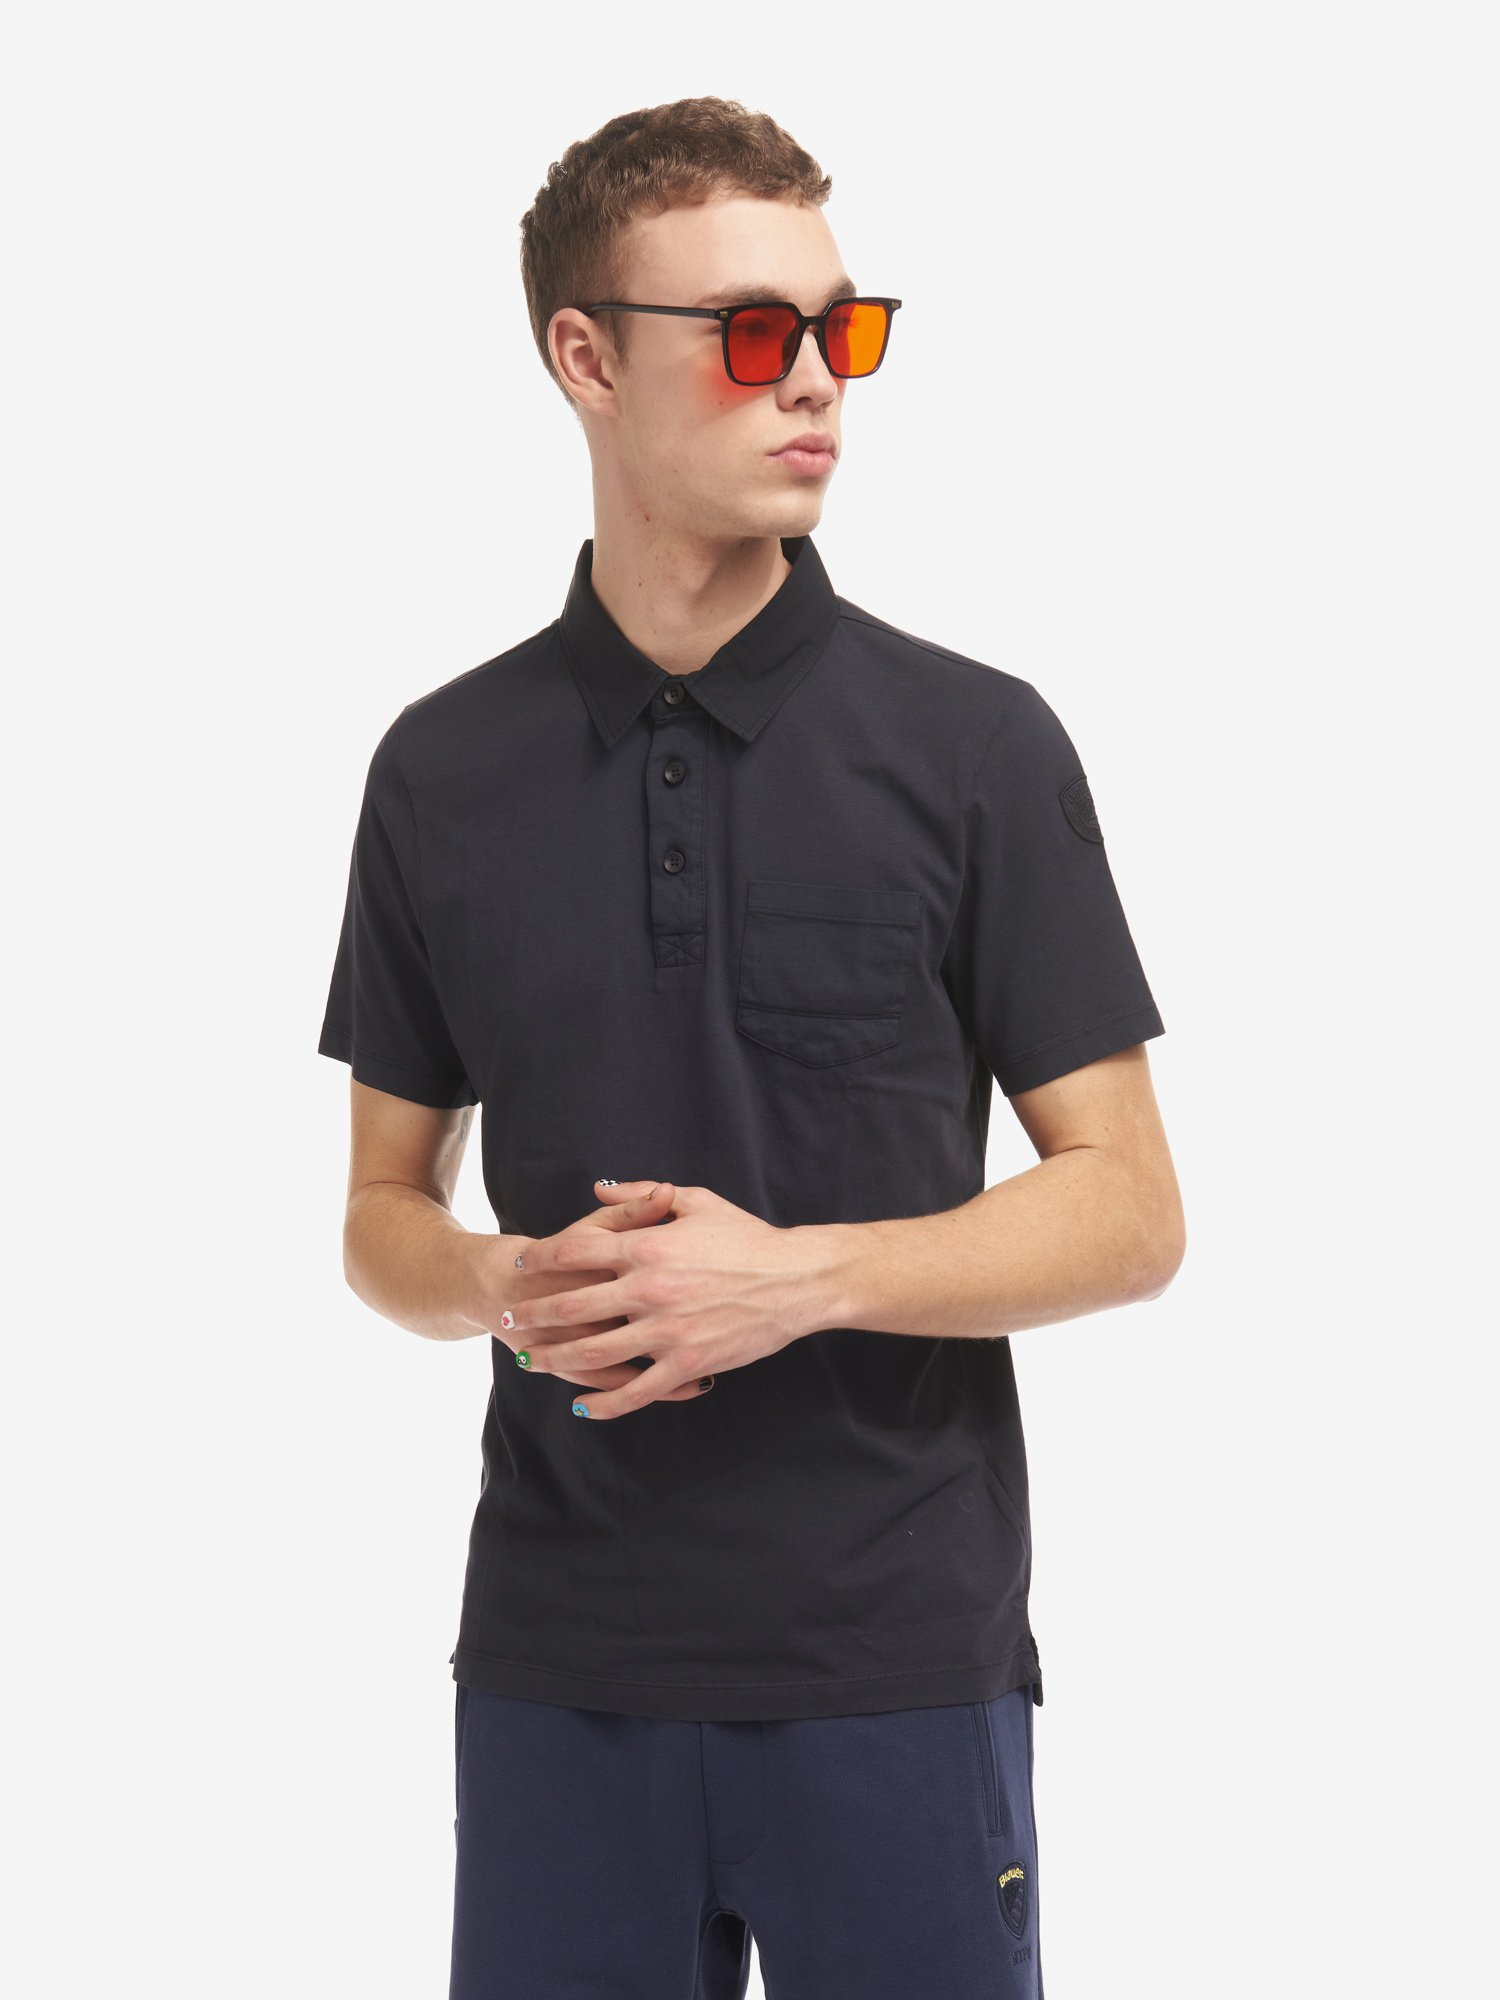 JERSEY POLO SHIRT WITH POCKET - Blauer